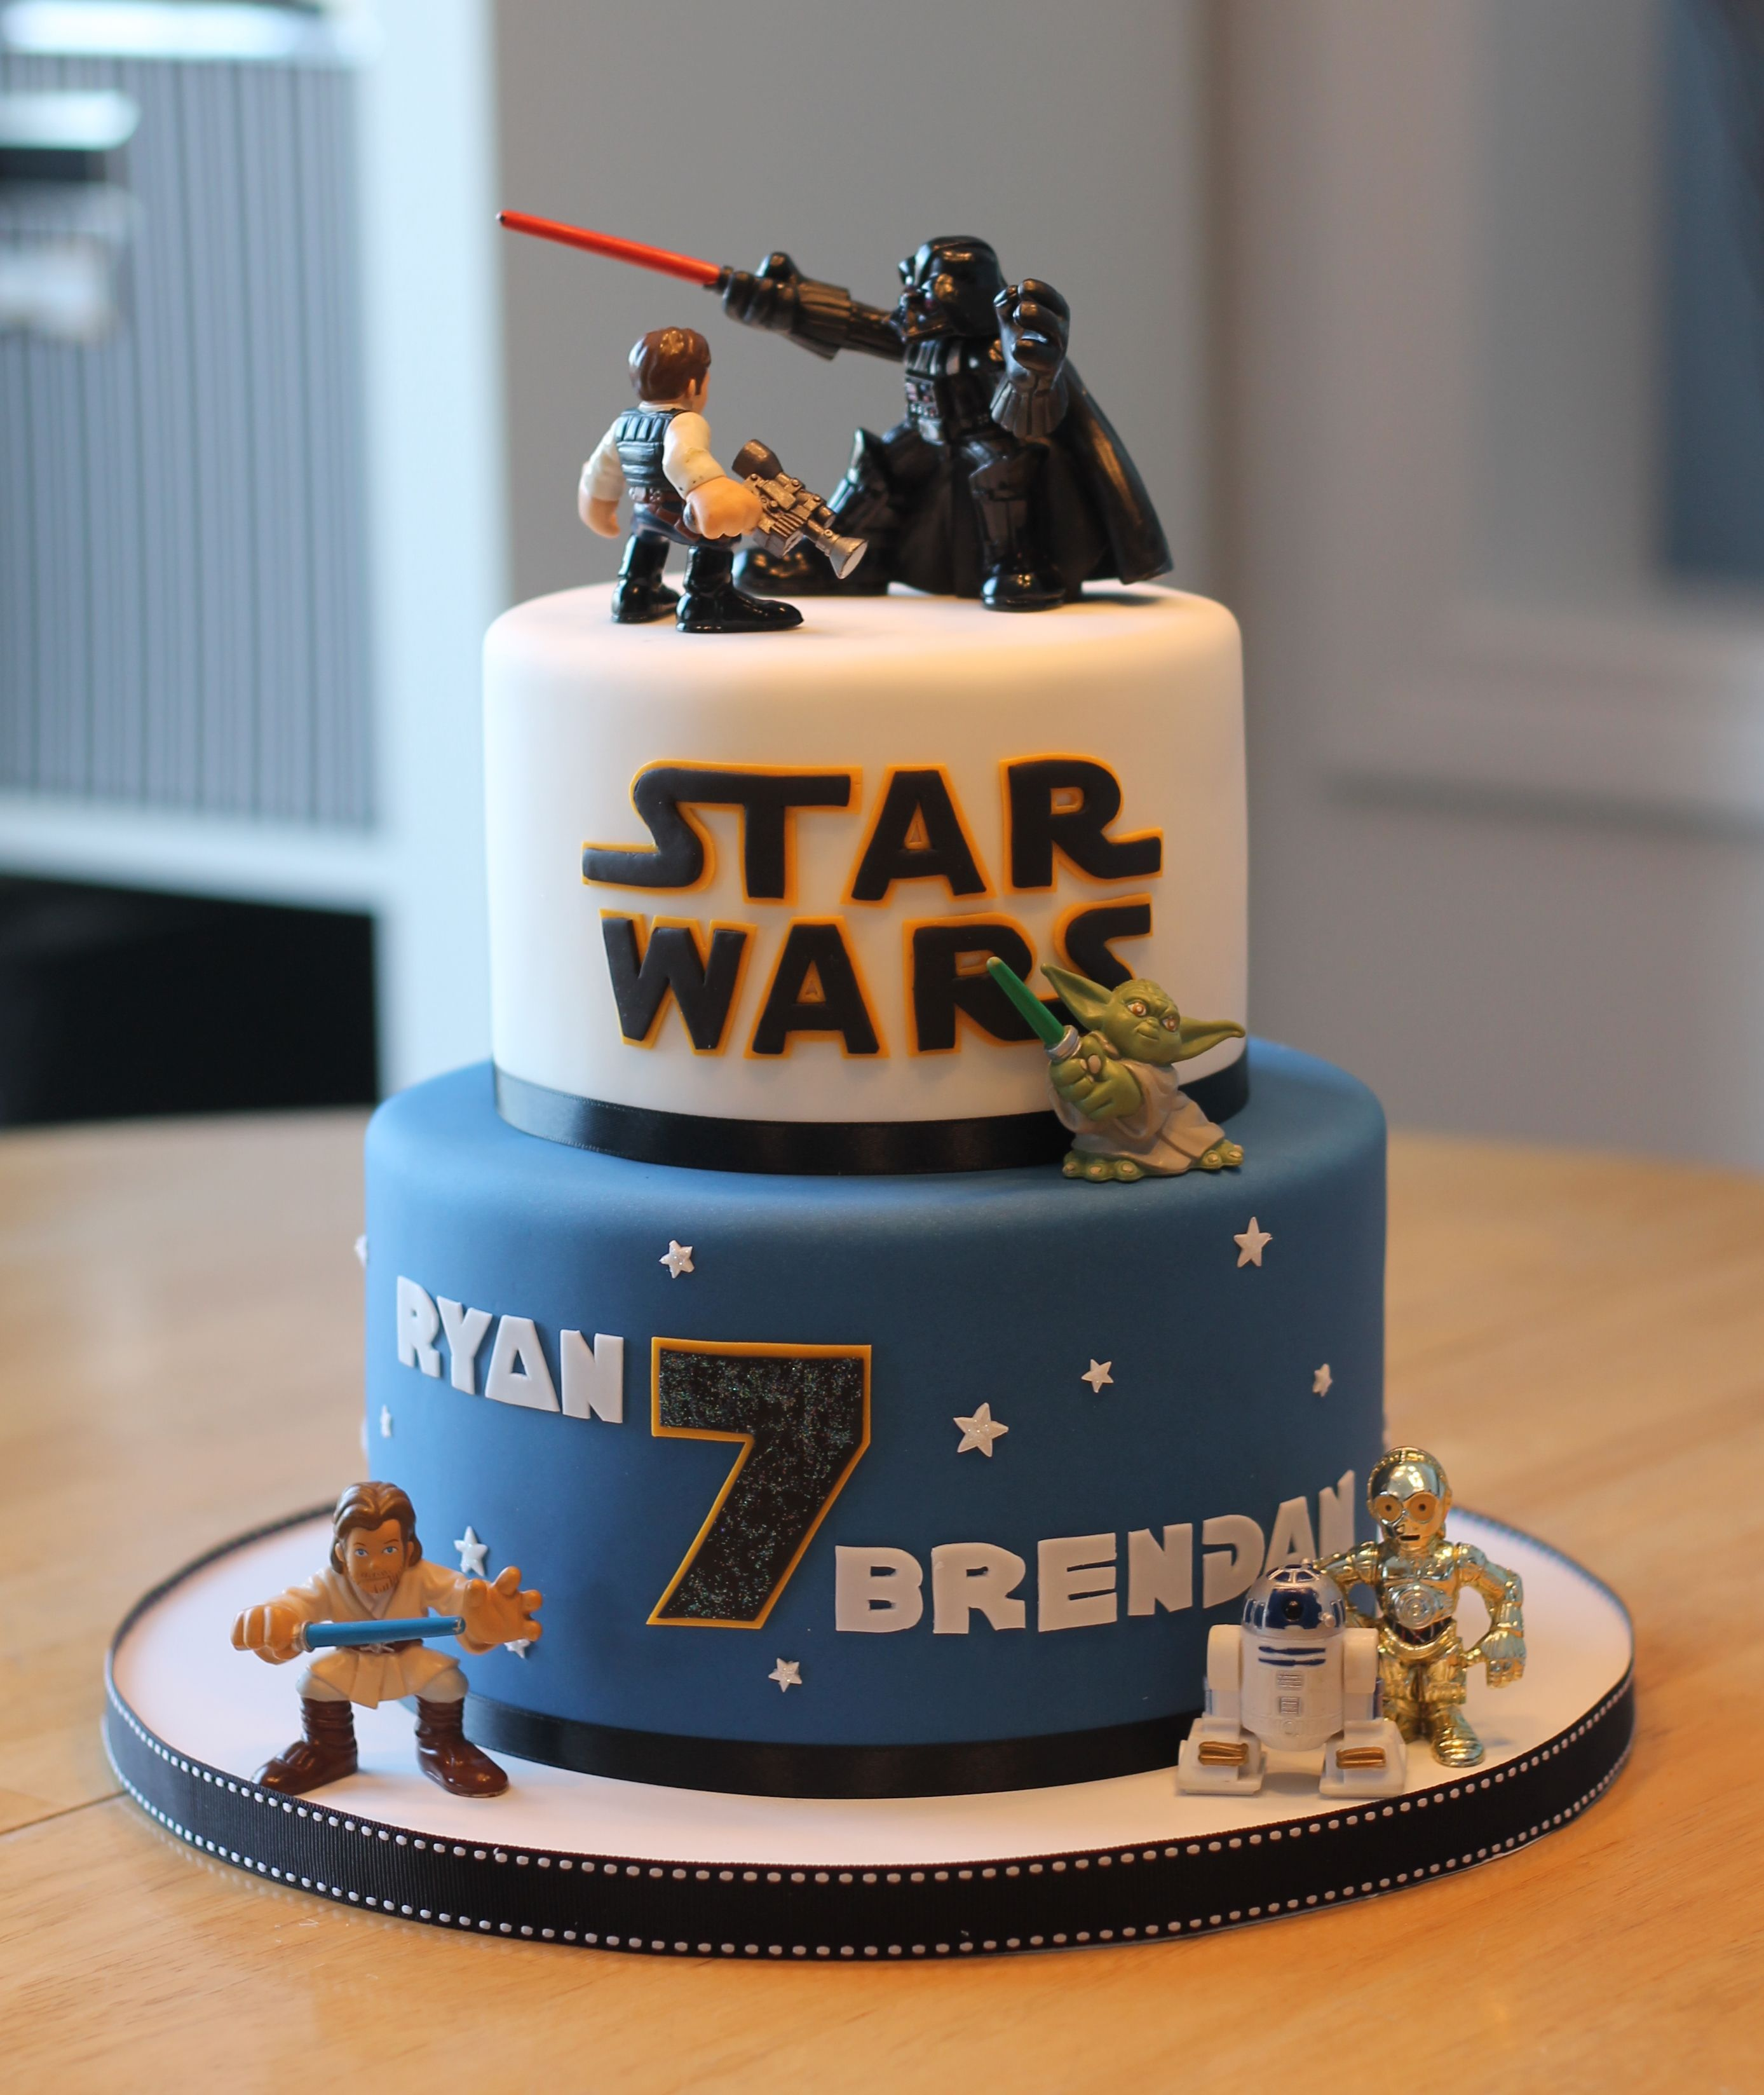 The Best Star Wars Birthday Cake